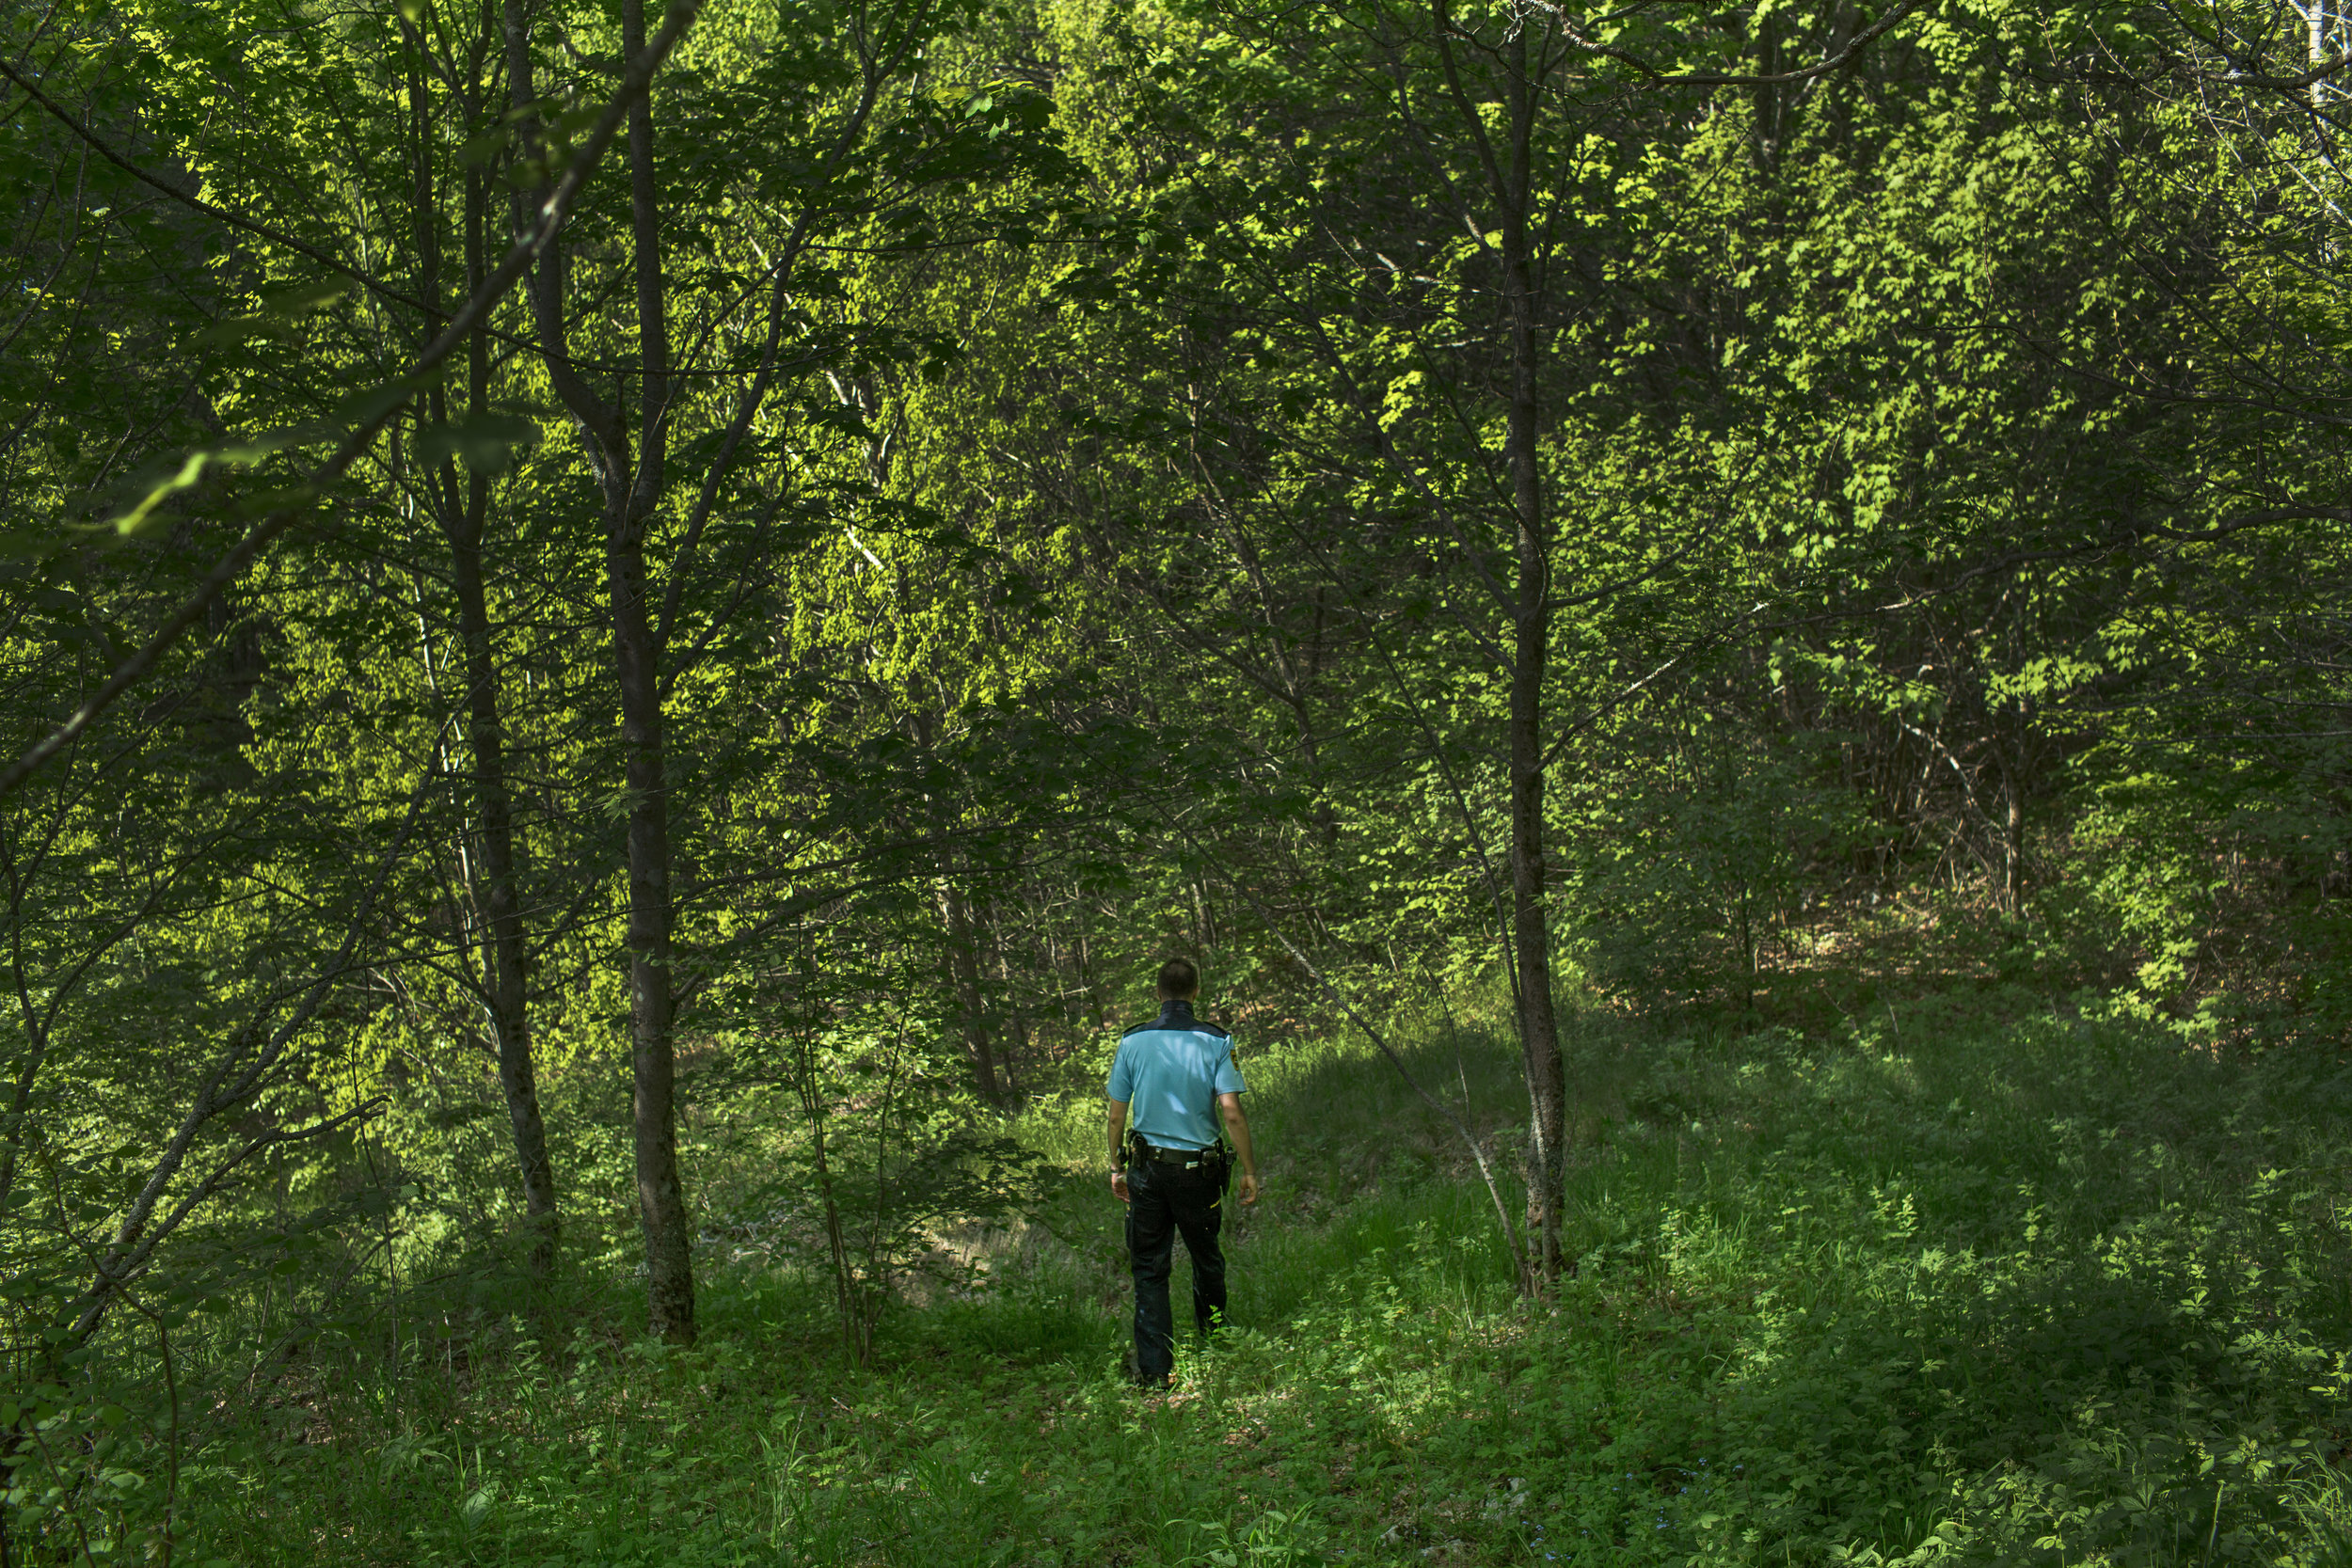 A Slovenian police officer in a forest at the border between Slovenia and Croatia, near town Ilirska Bistrica, Slovenia.